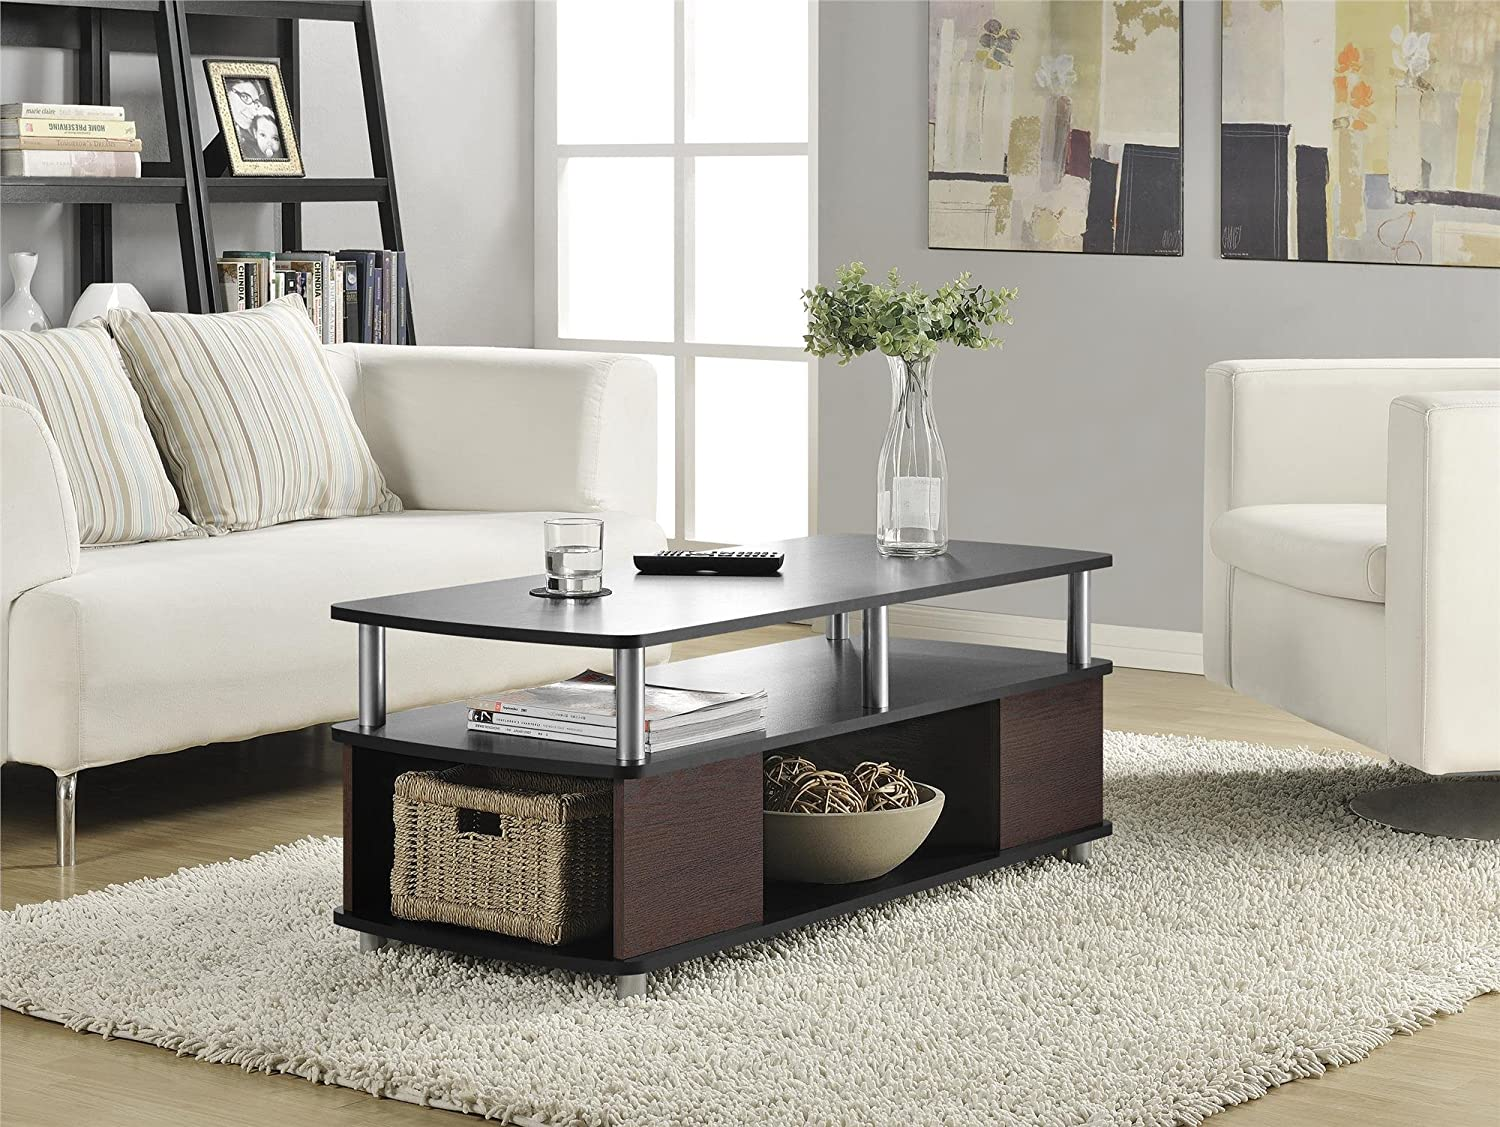 Storage Living Room Amazoncom Altra Carson Coffee Table Cherry Black Kitchen Dining